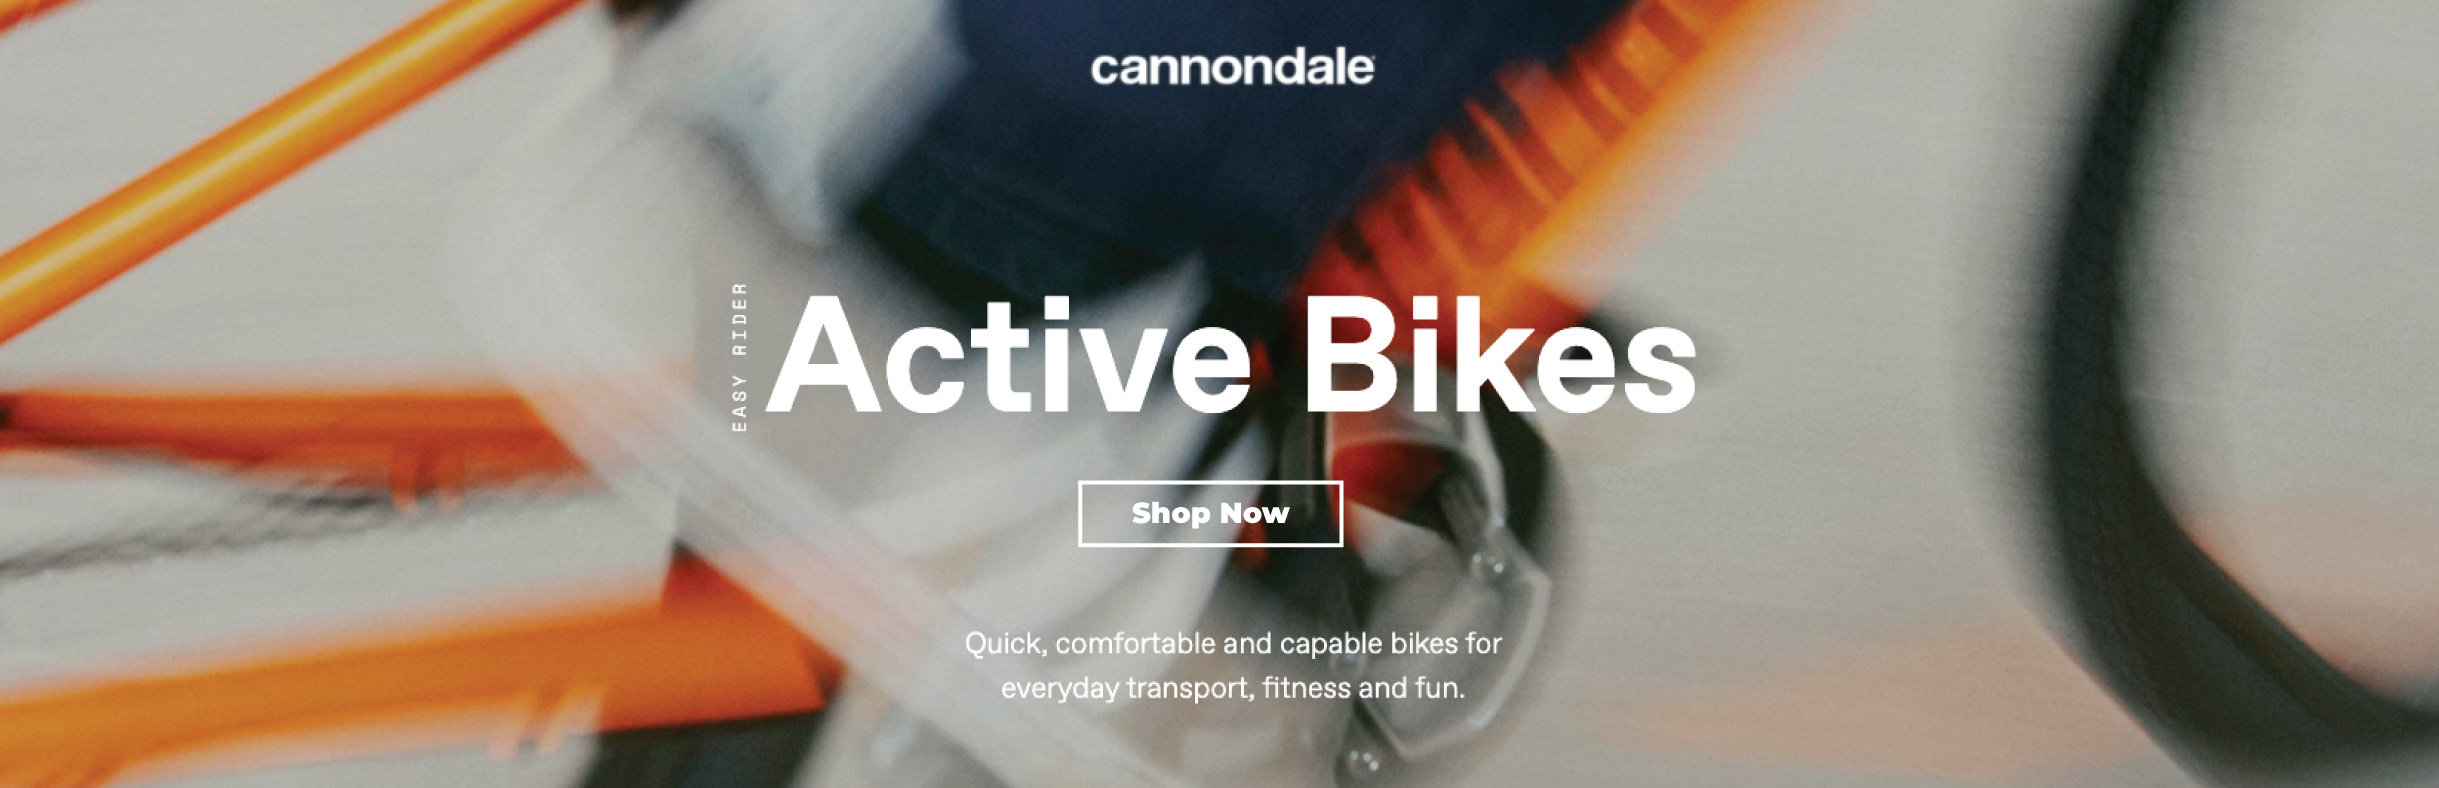 Cannondale Banner